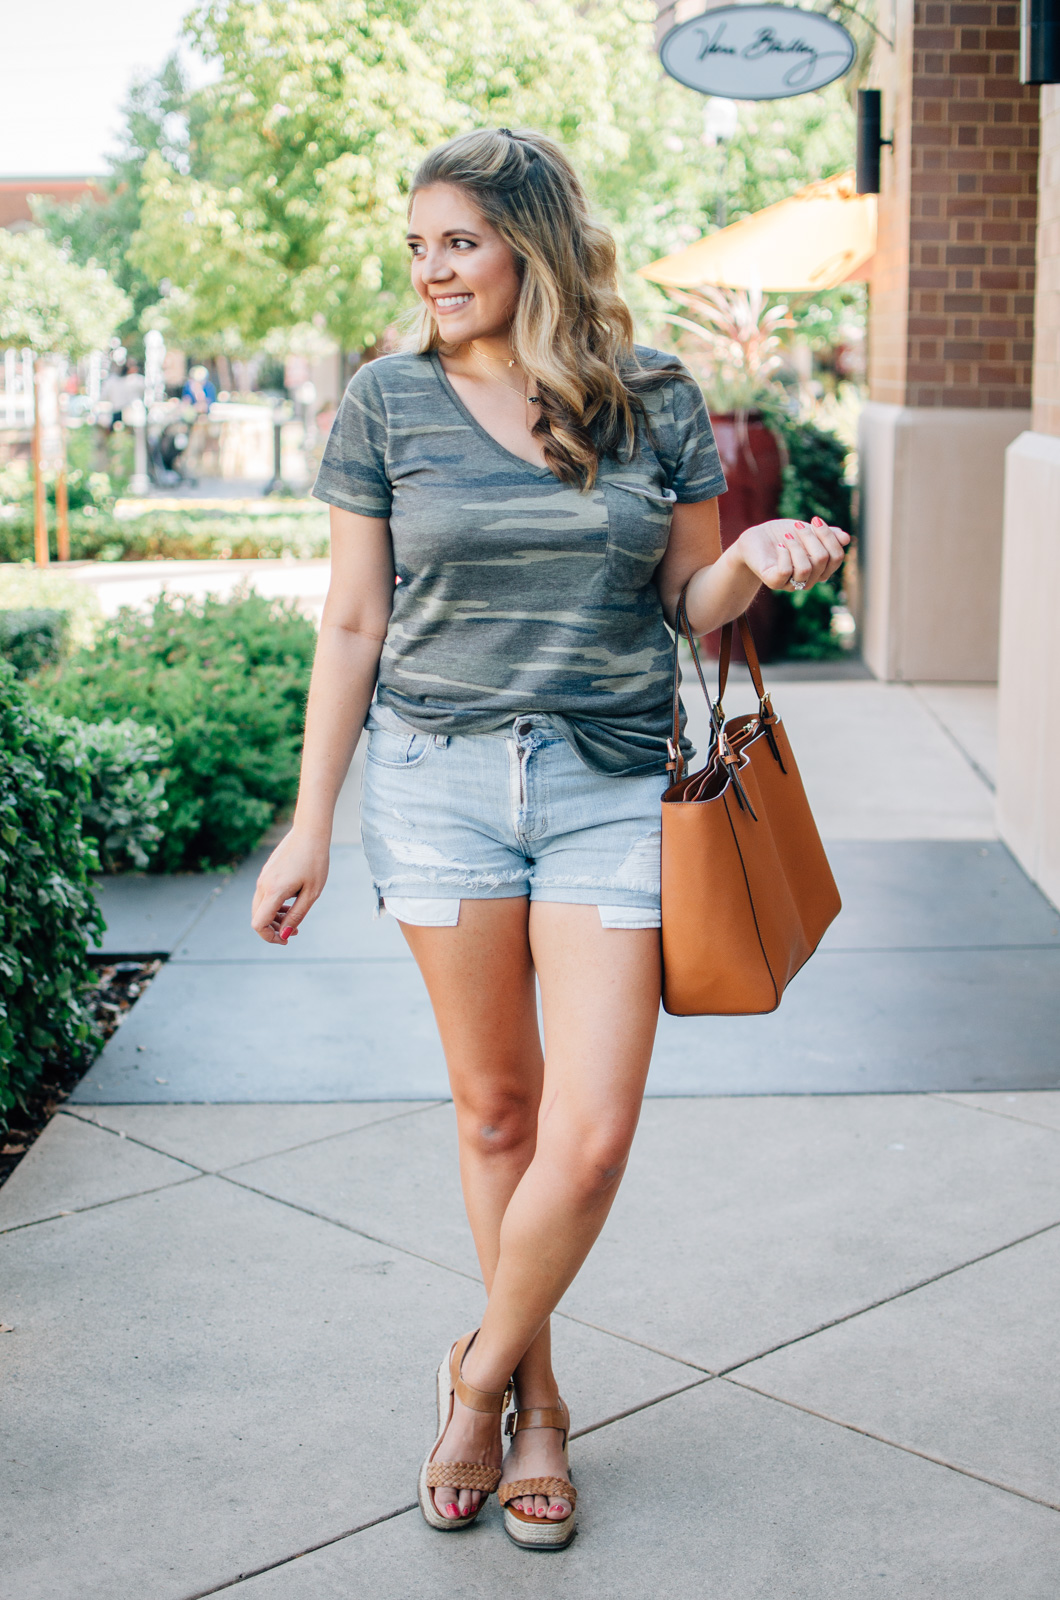 camo tee outfit for summer - camo tee and cutoff shorts | For more summer style ideas, head to bylaurenm.com!